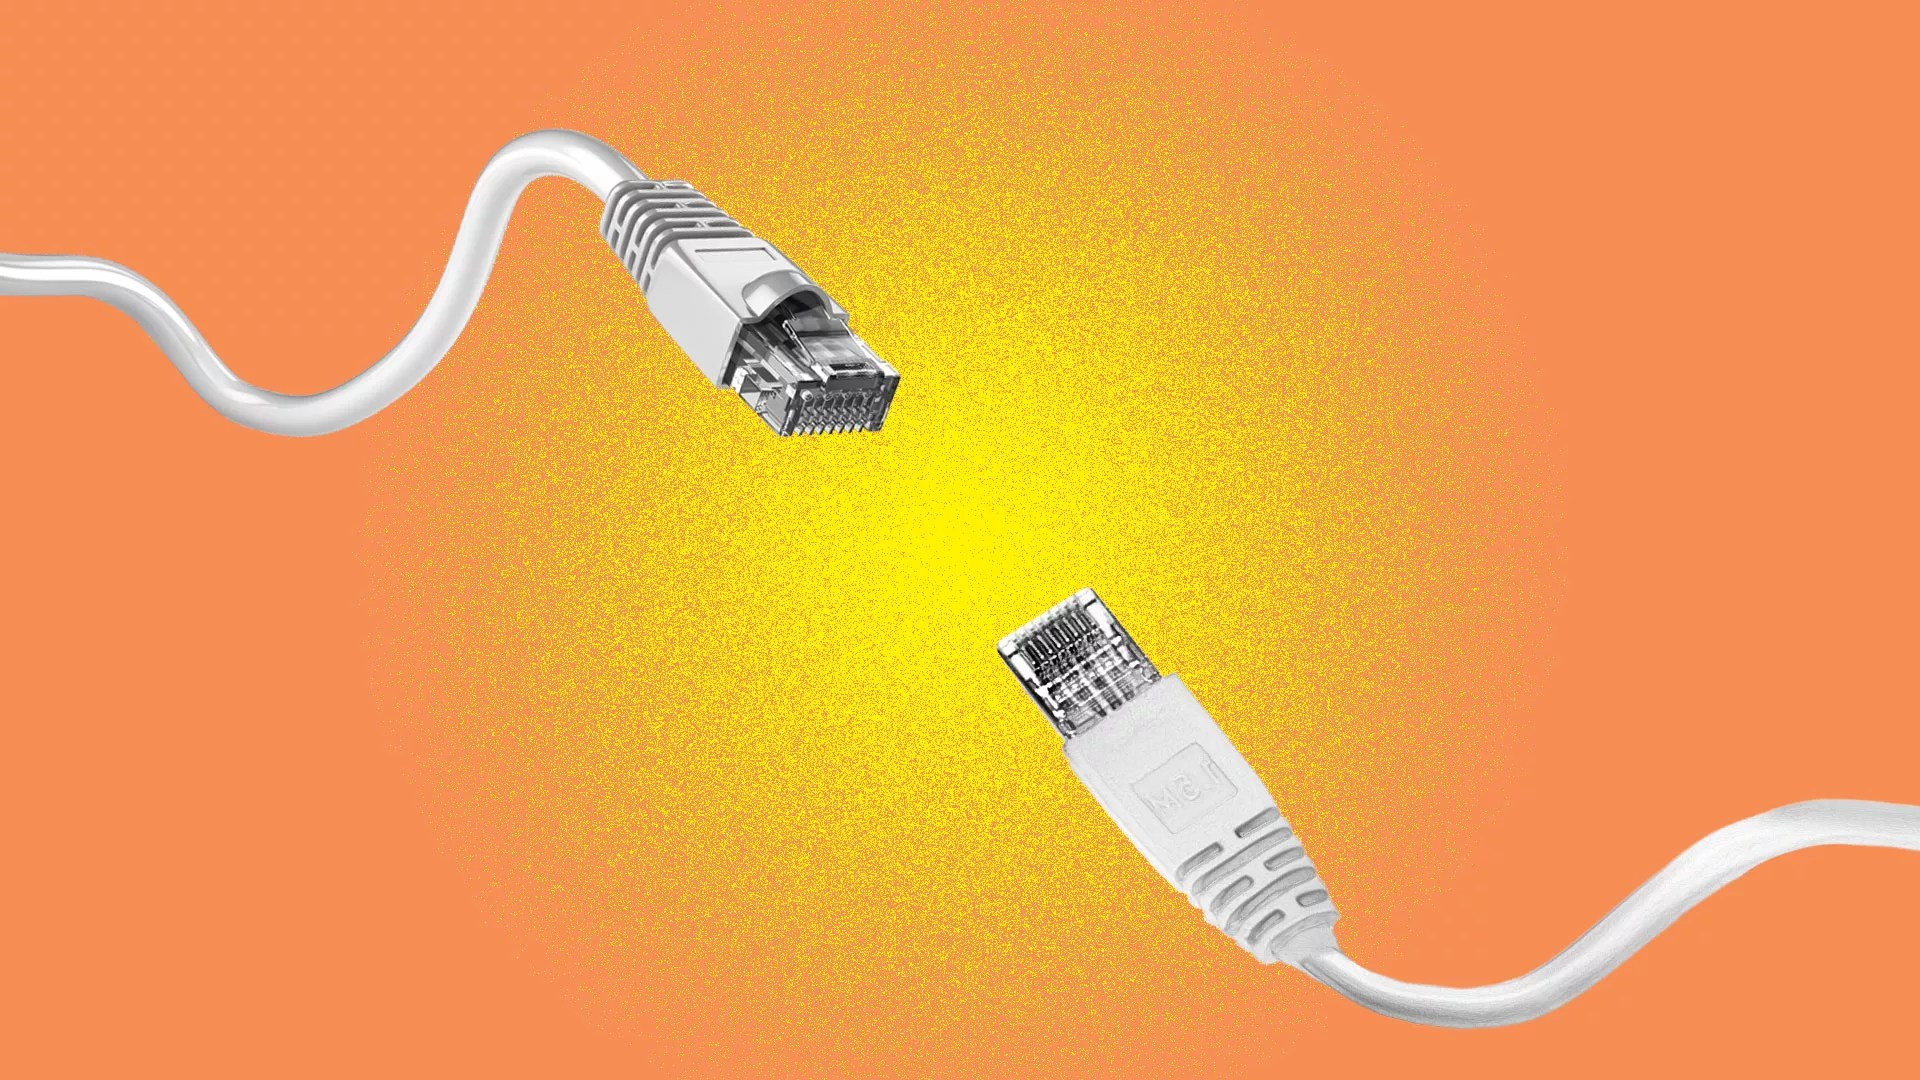 hight resolution of illustration of two ethernet cables poised for a fight